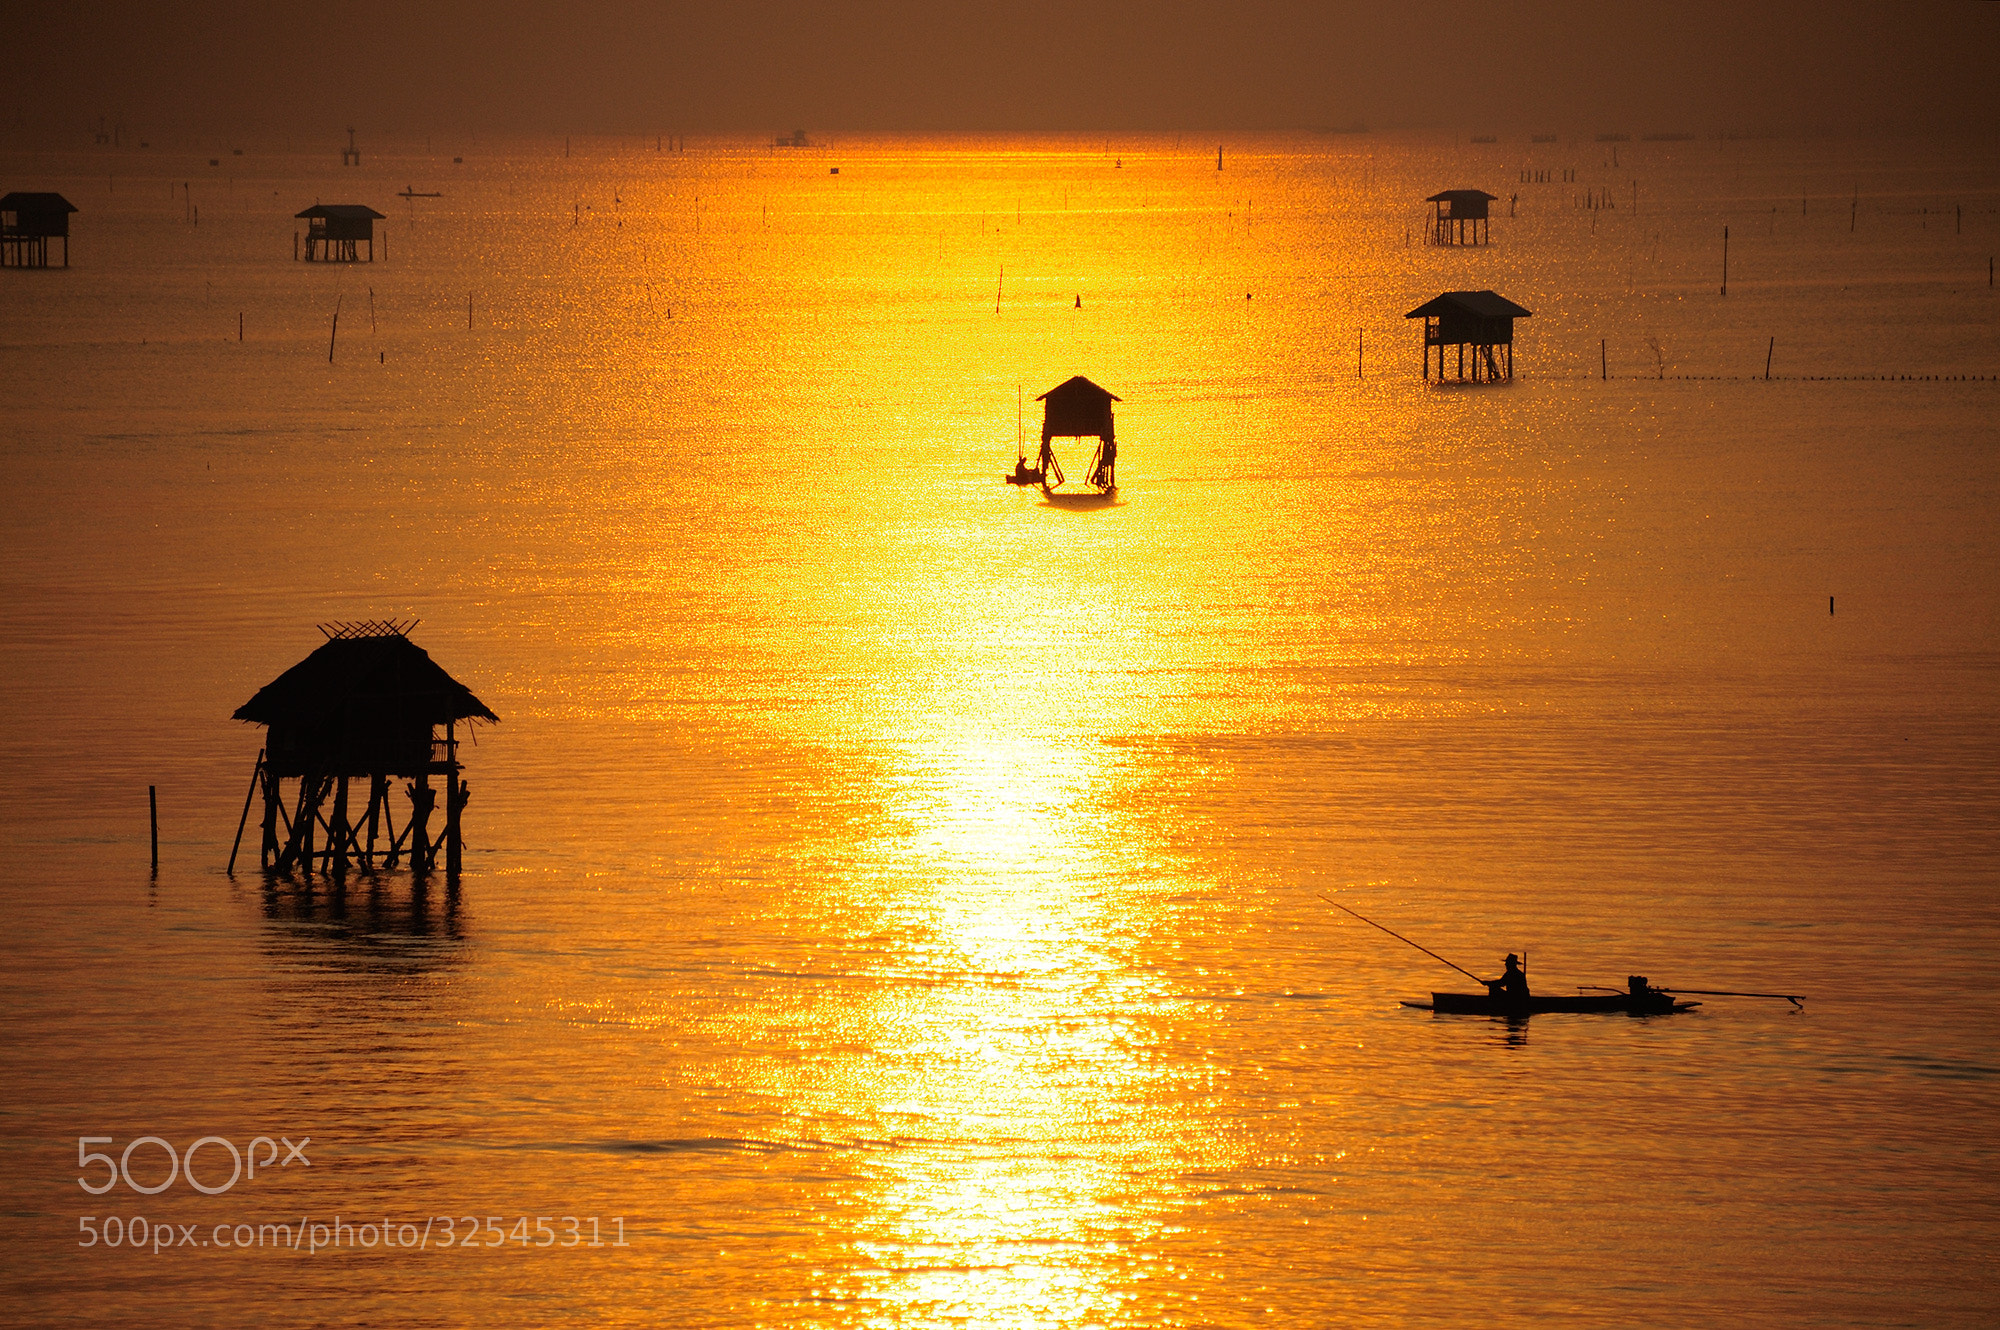 Photograph The fisherman by Puchong Pannoi on 500px